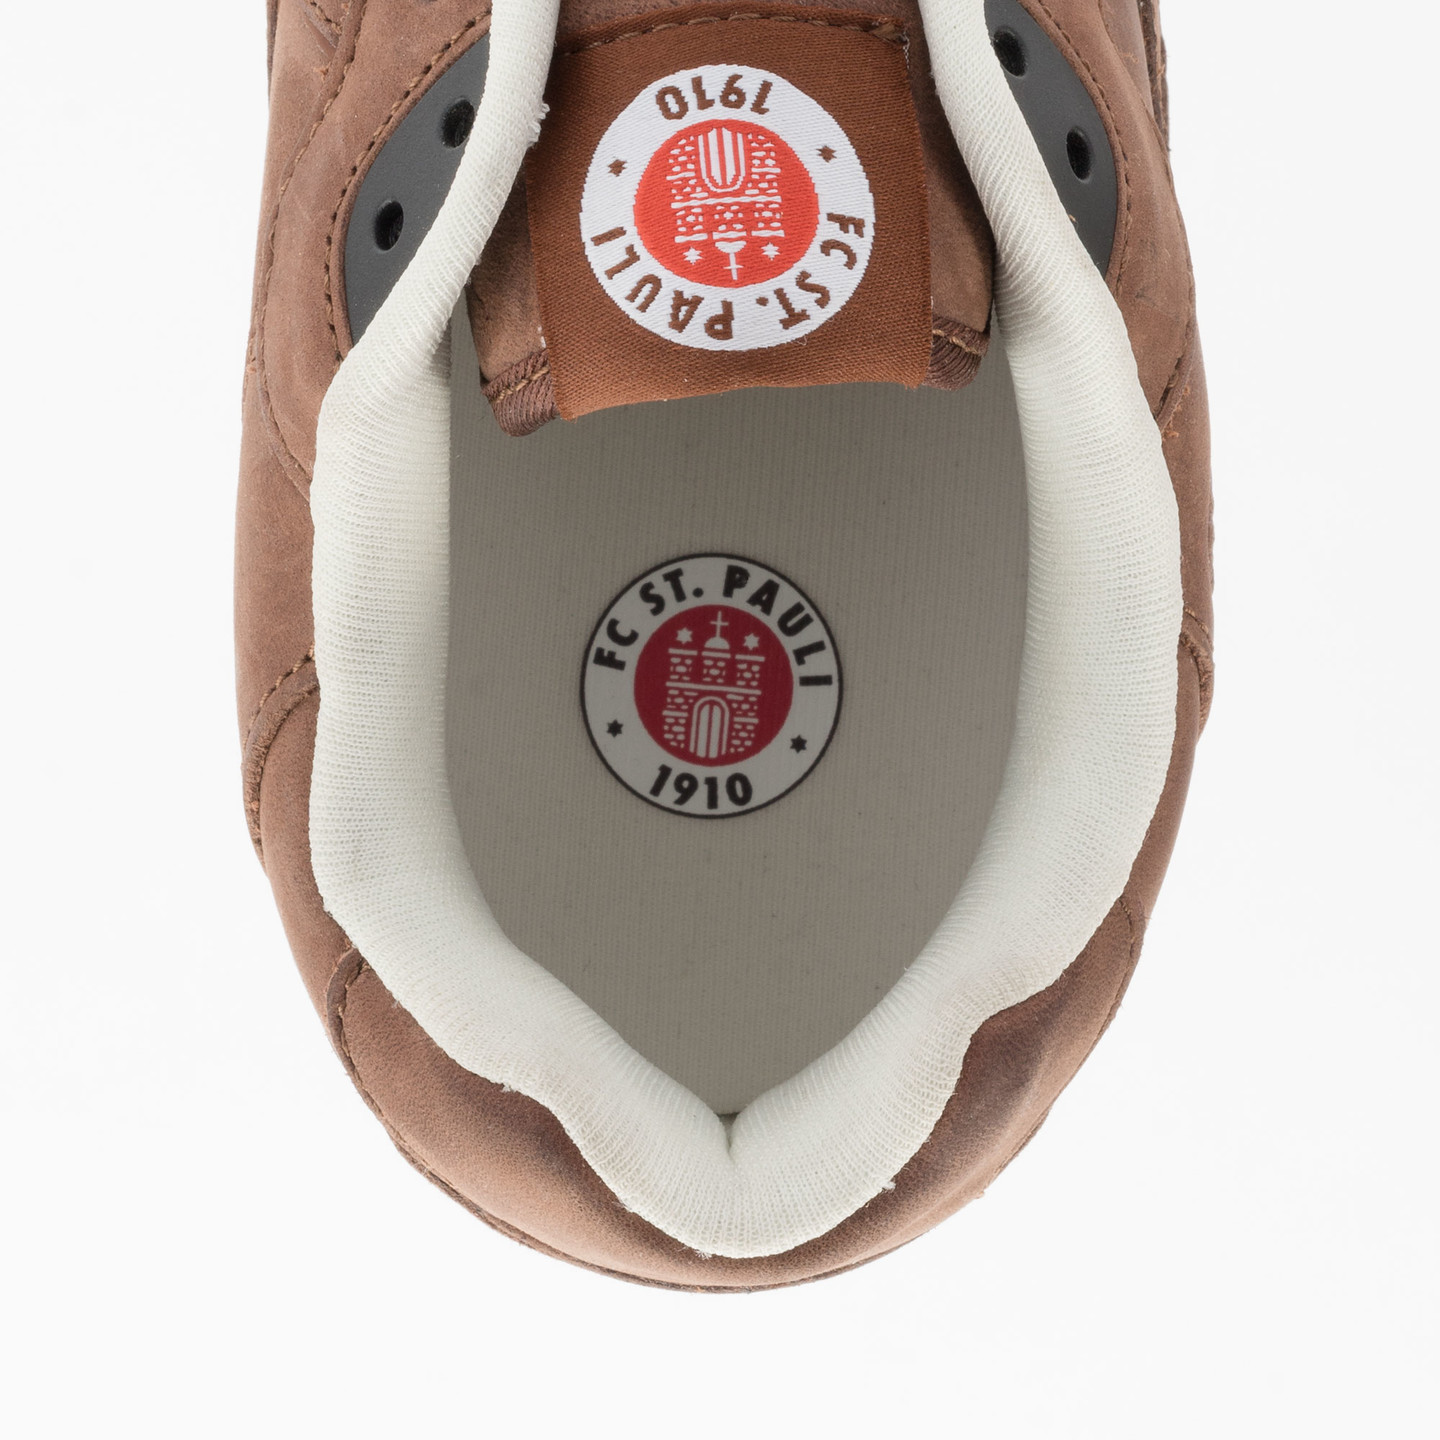 Hummel Marathona Low x St.Pauli Dark Brown 63-821-8225-45